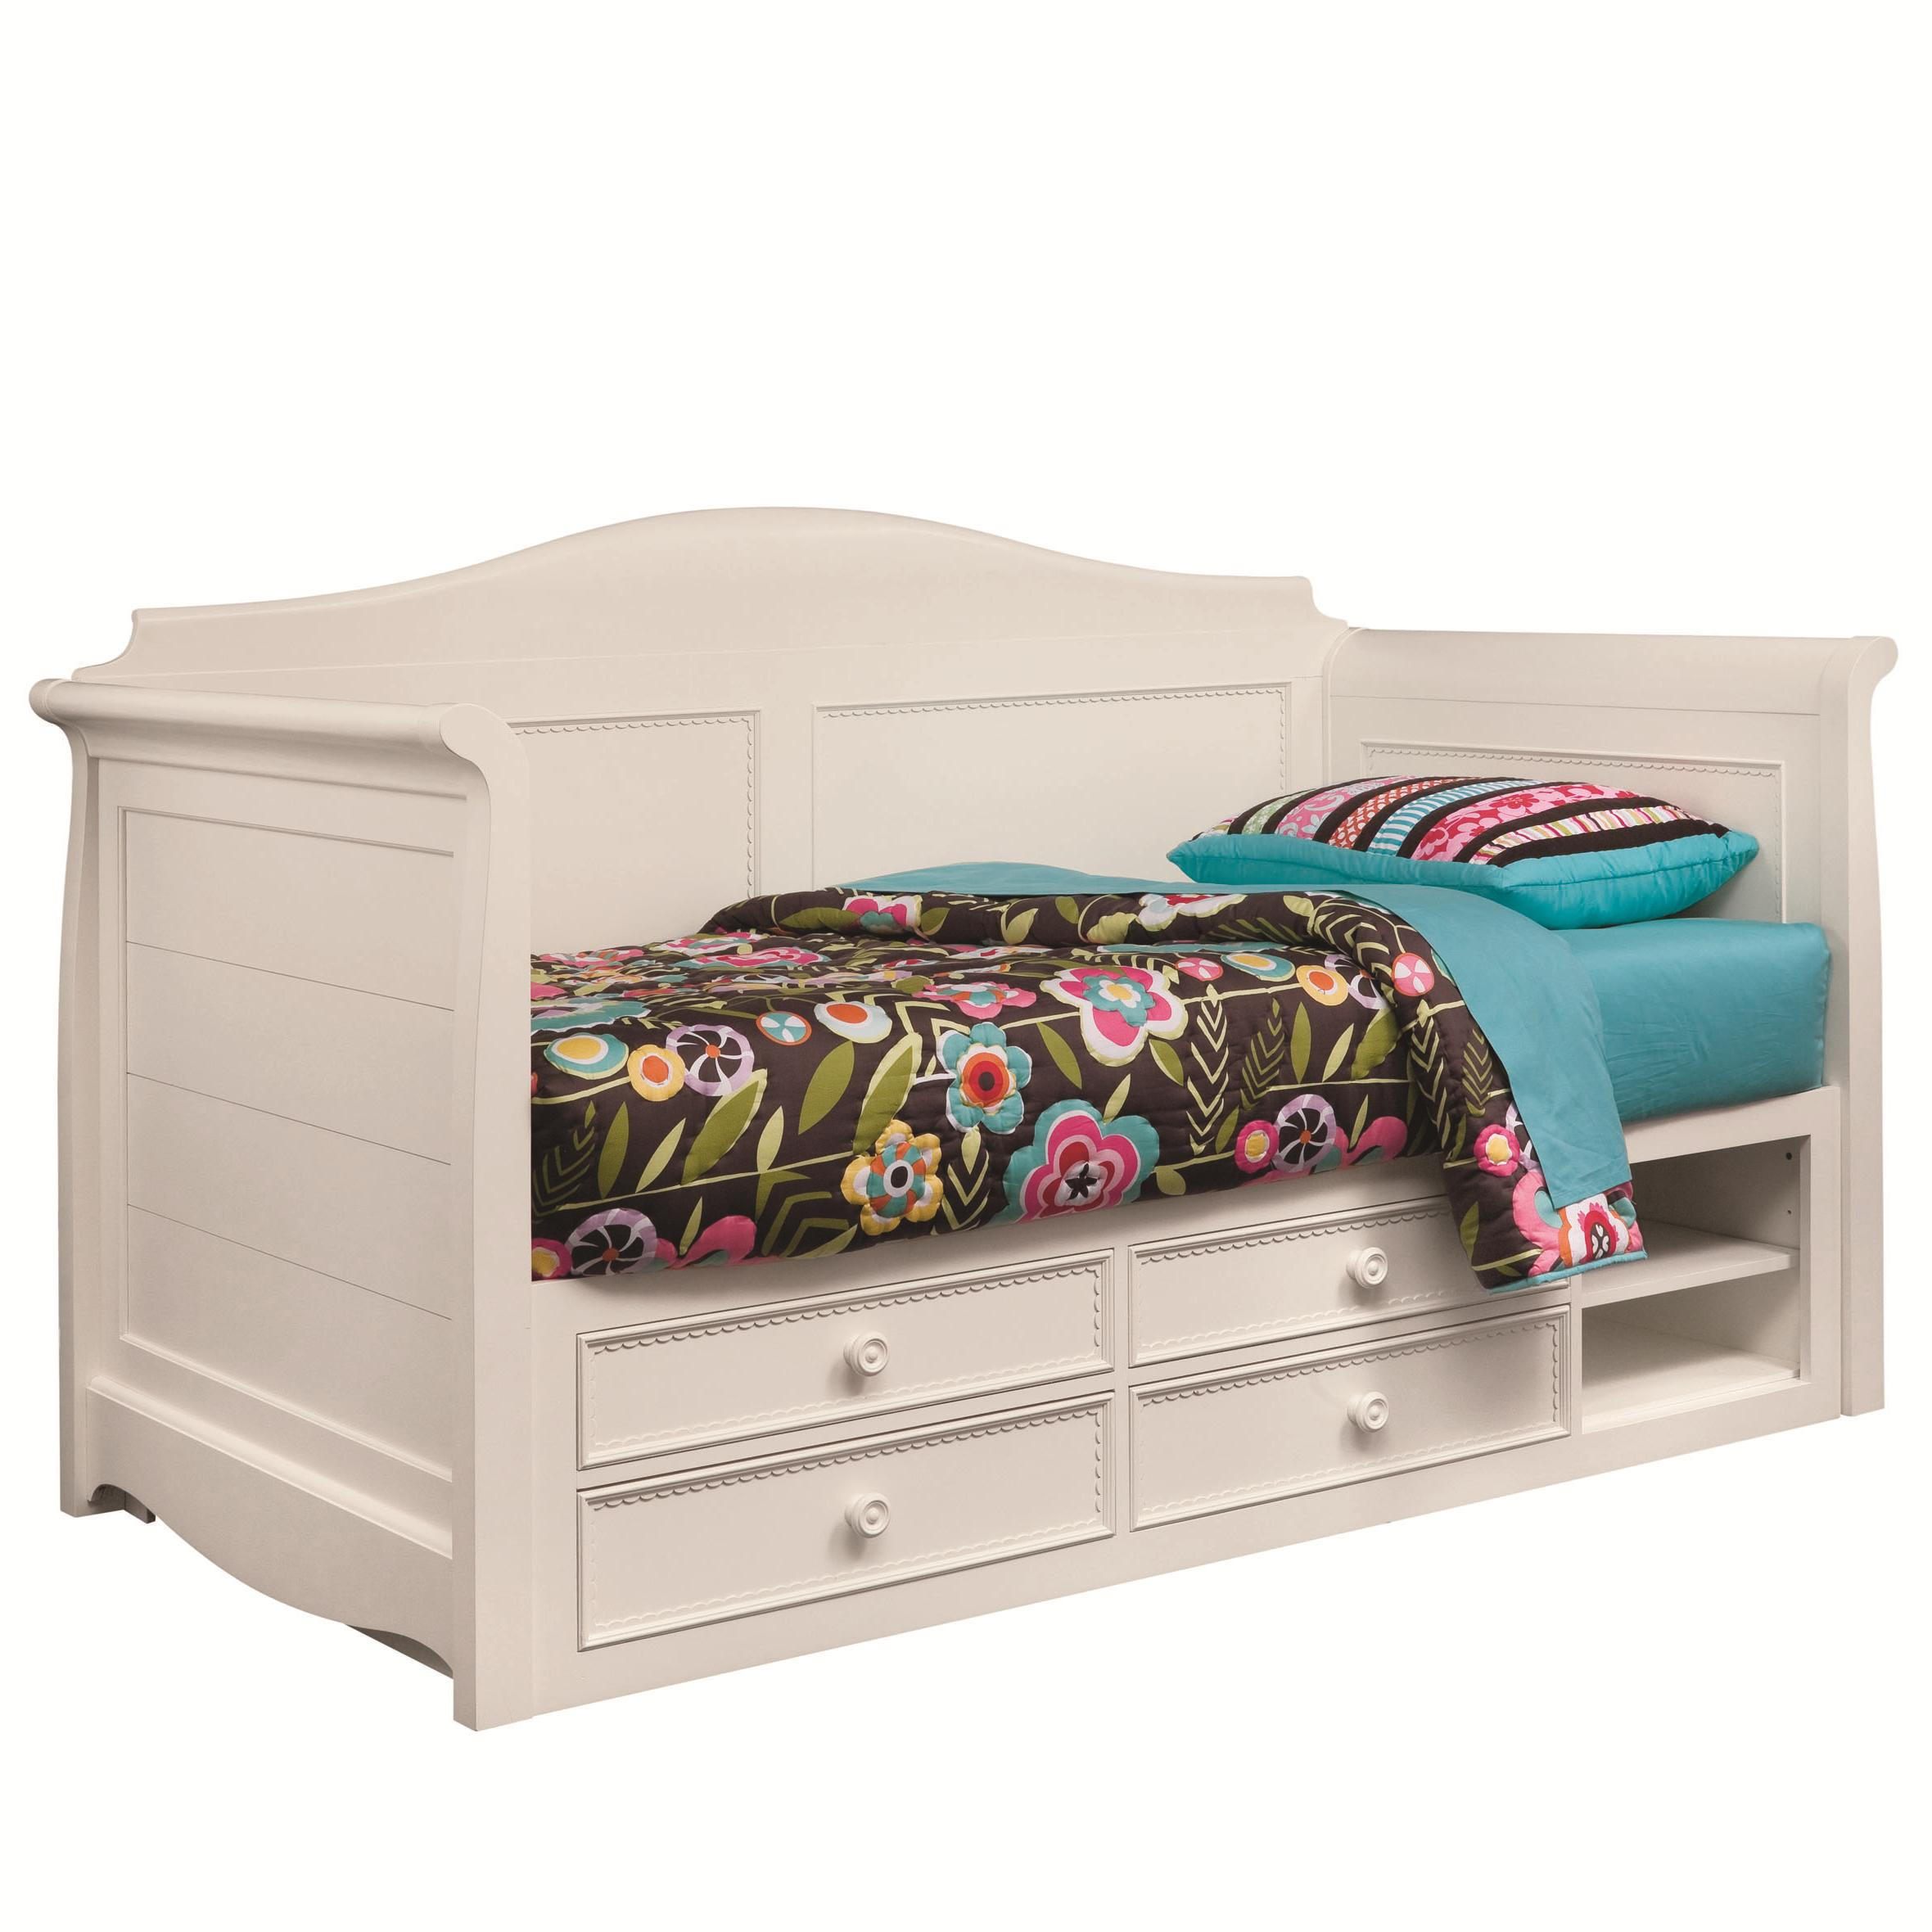 Design Daybeds With Storage lea industries hannah twin daybed with storage ahfa dealer locator